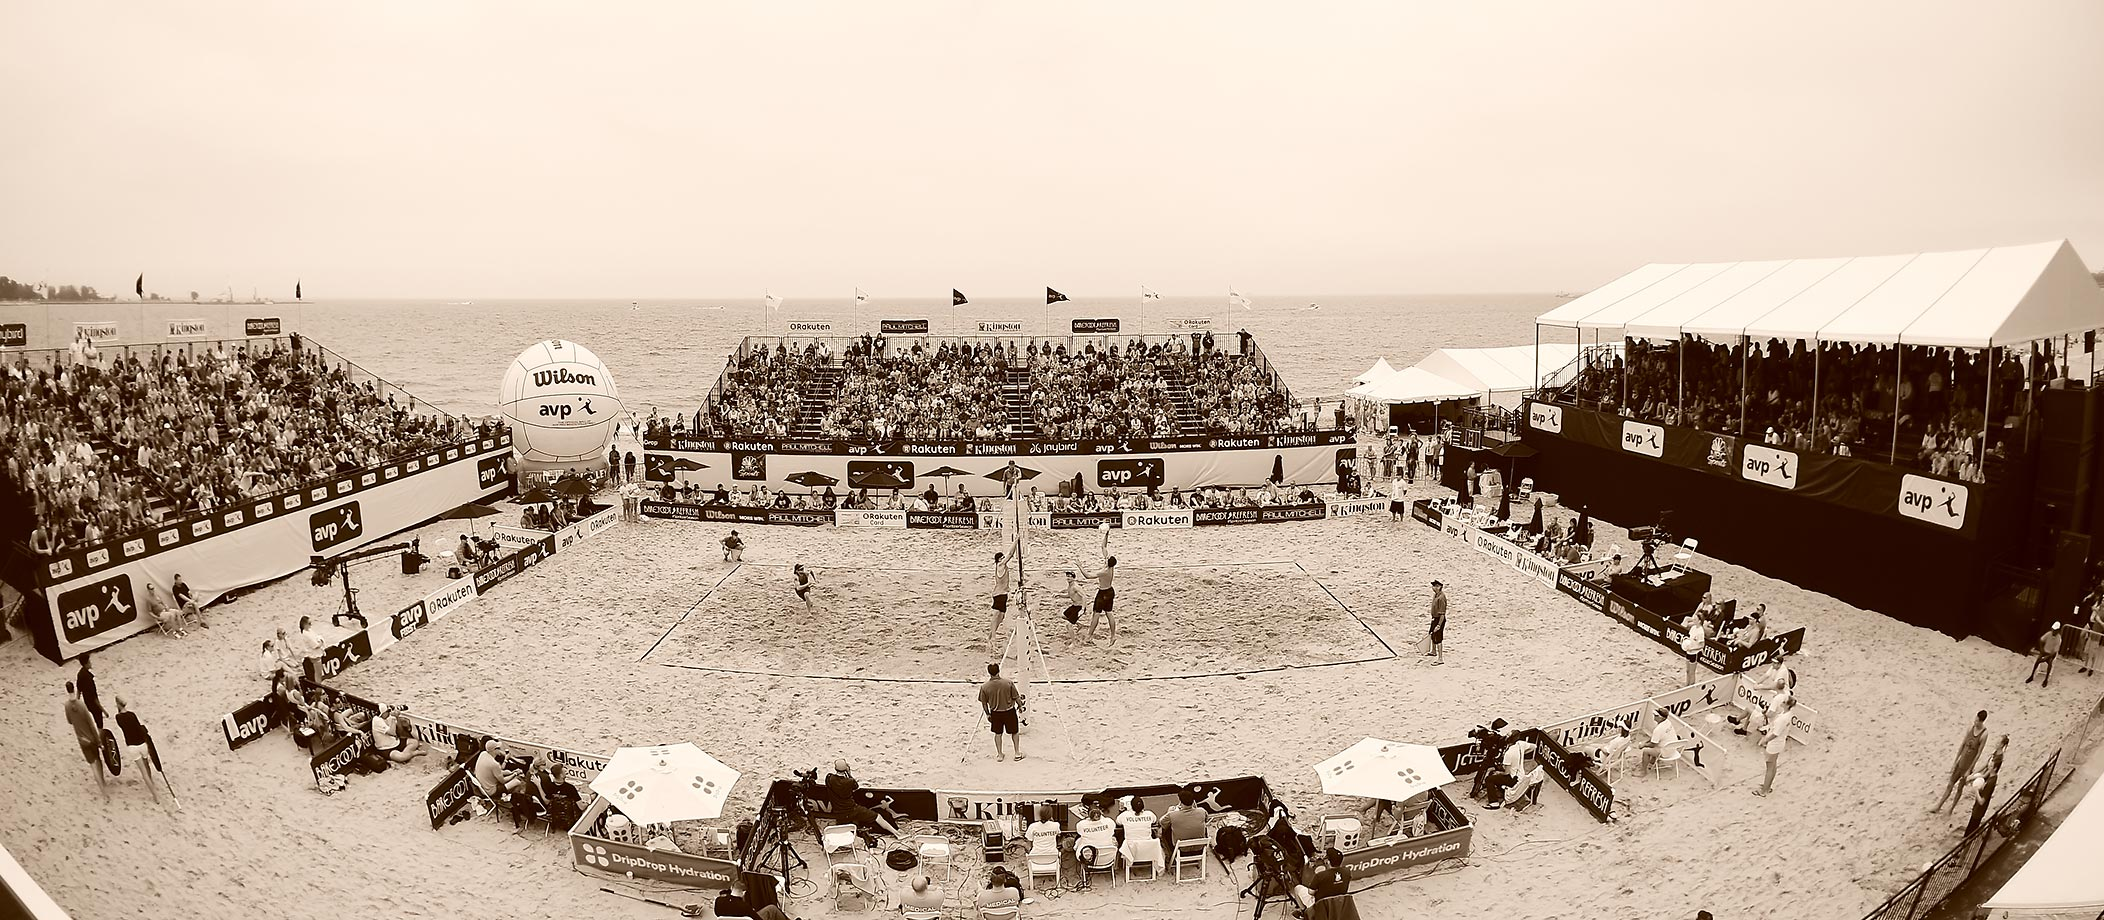 Lake Michigan provided the backdrop for the AVP Kingston Chicago Open.